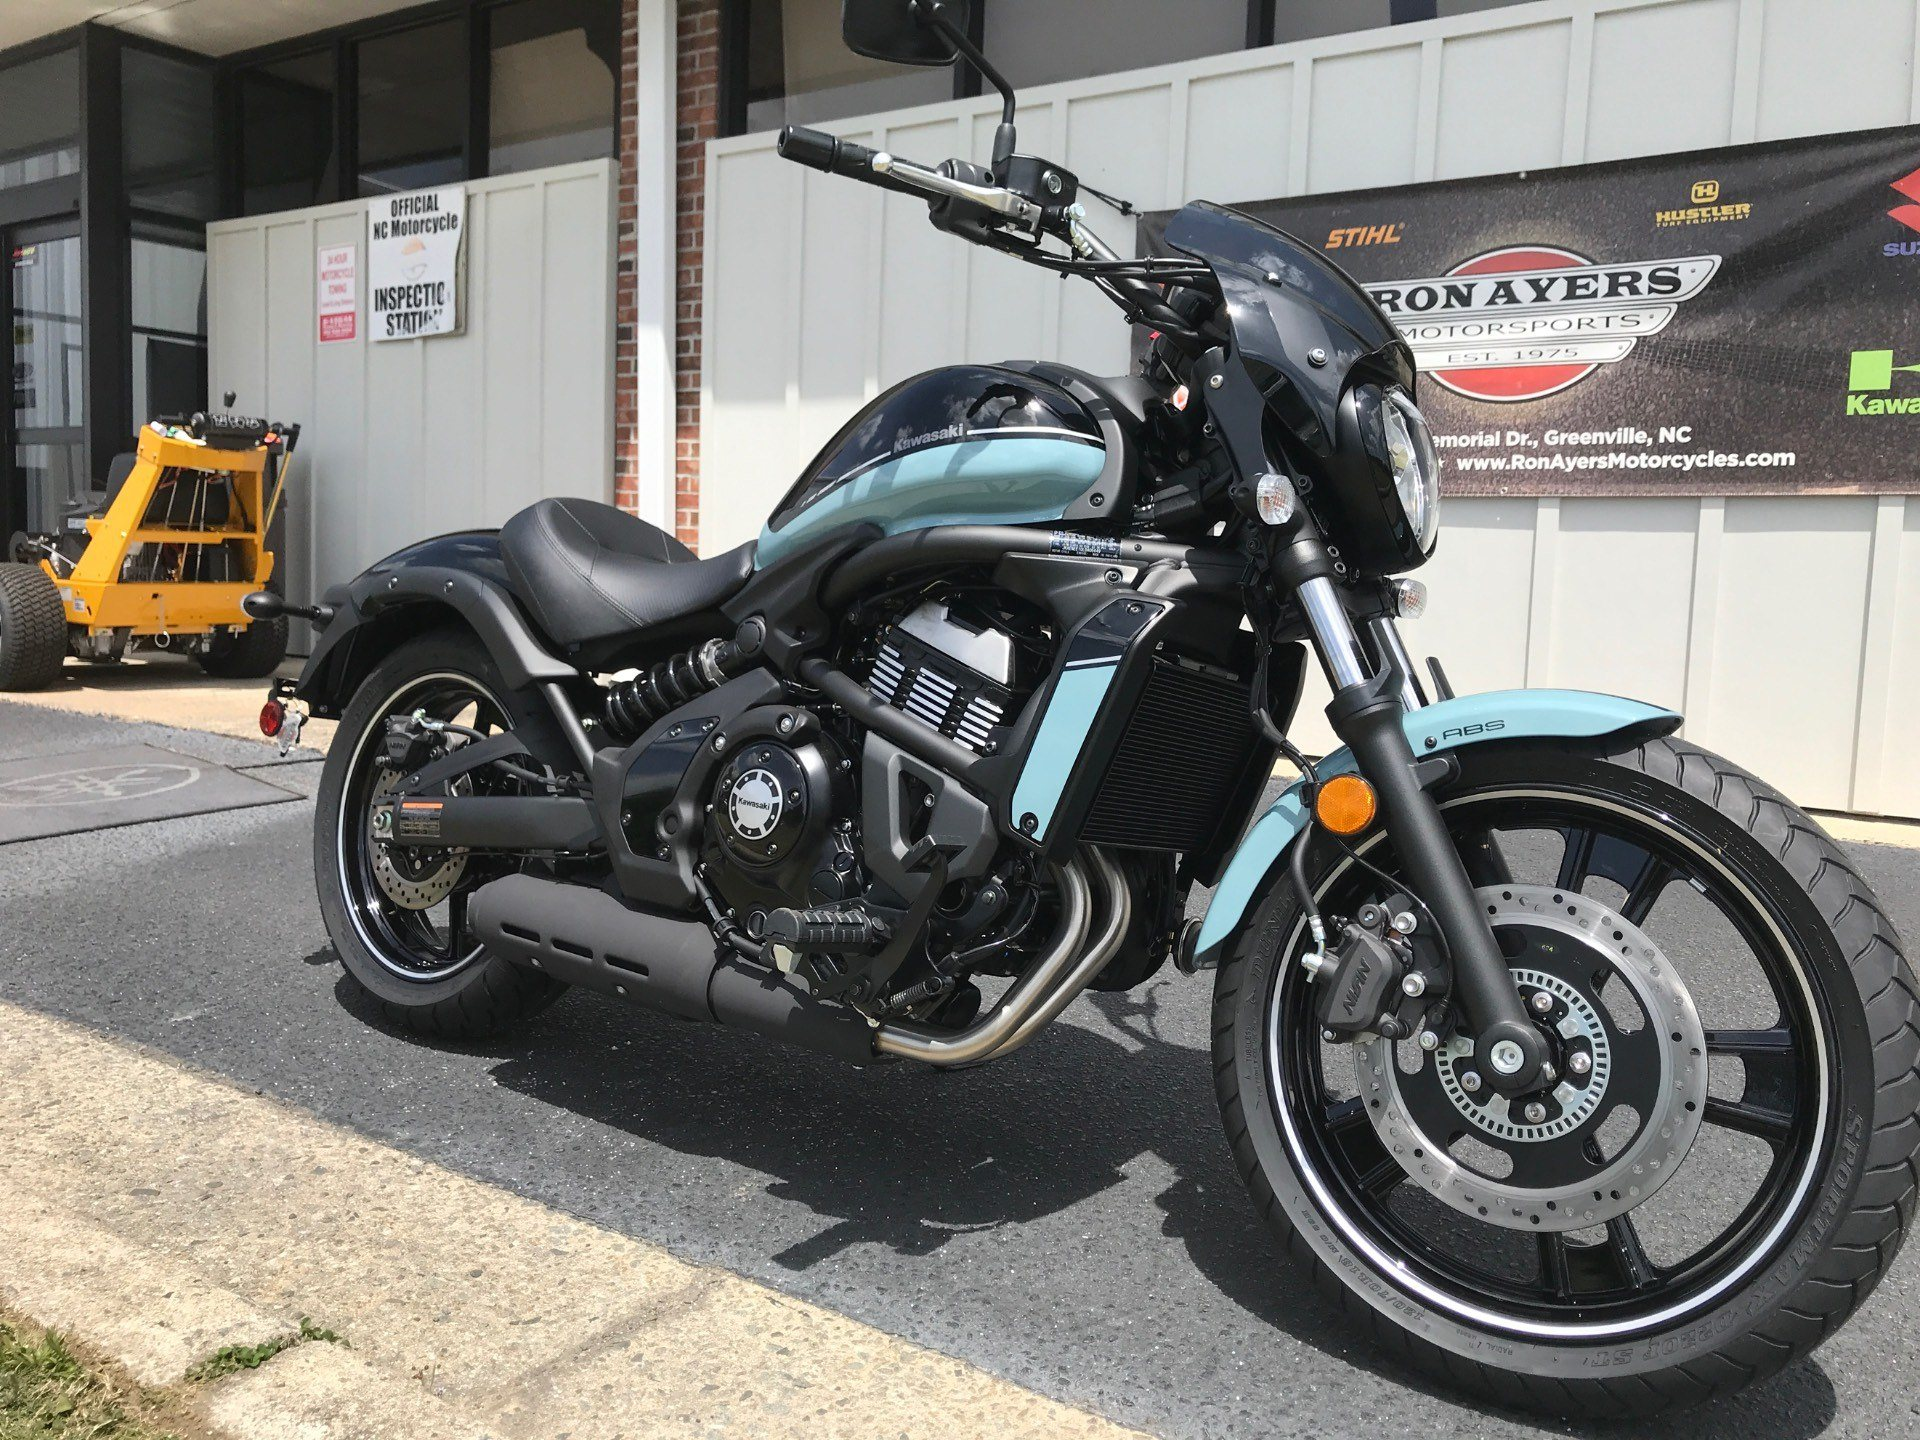 2020 Kawasaki Vulcan S ABS Café in Greenville, North Carolina - Photo 2